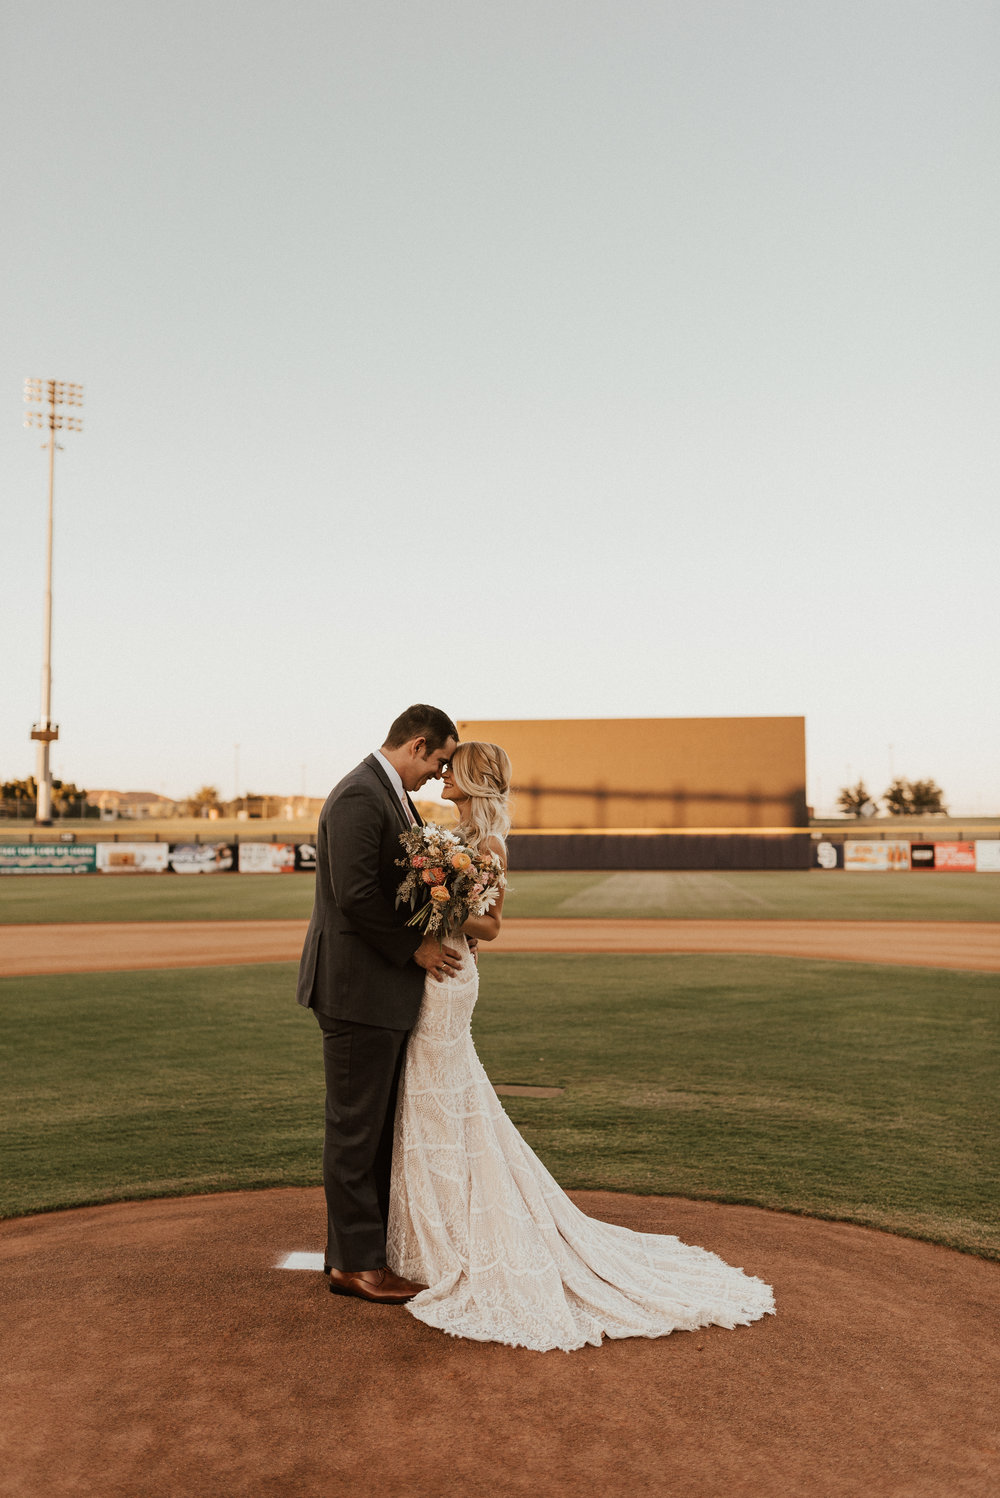 Baseball Stadium Wedding in the Desert